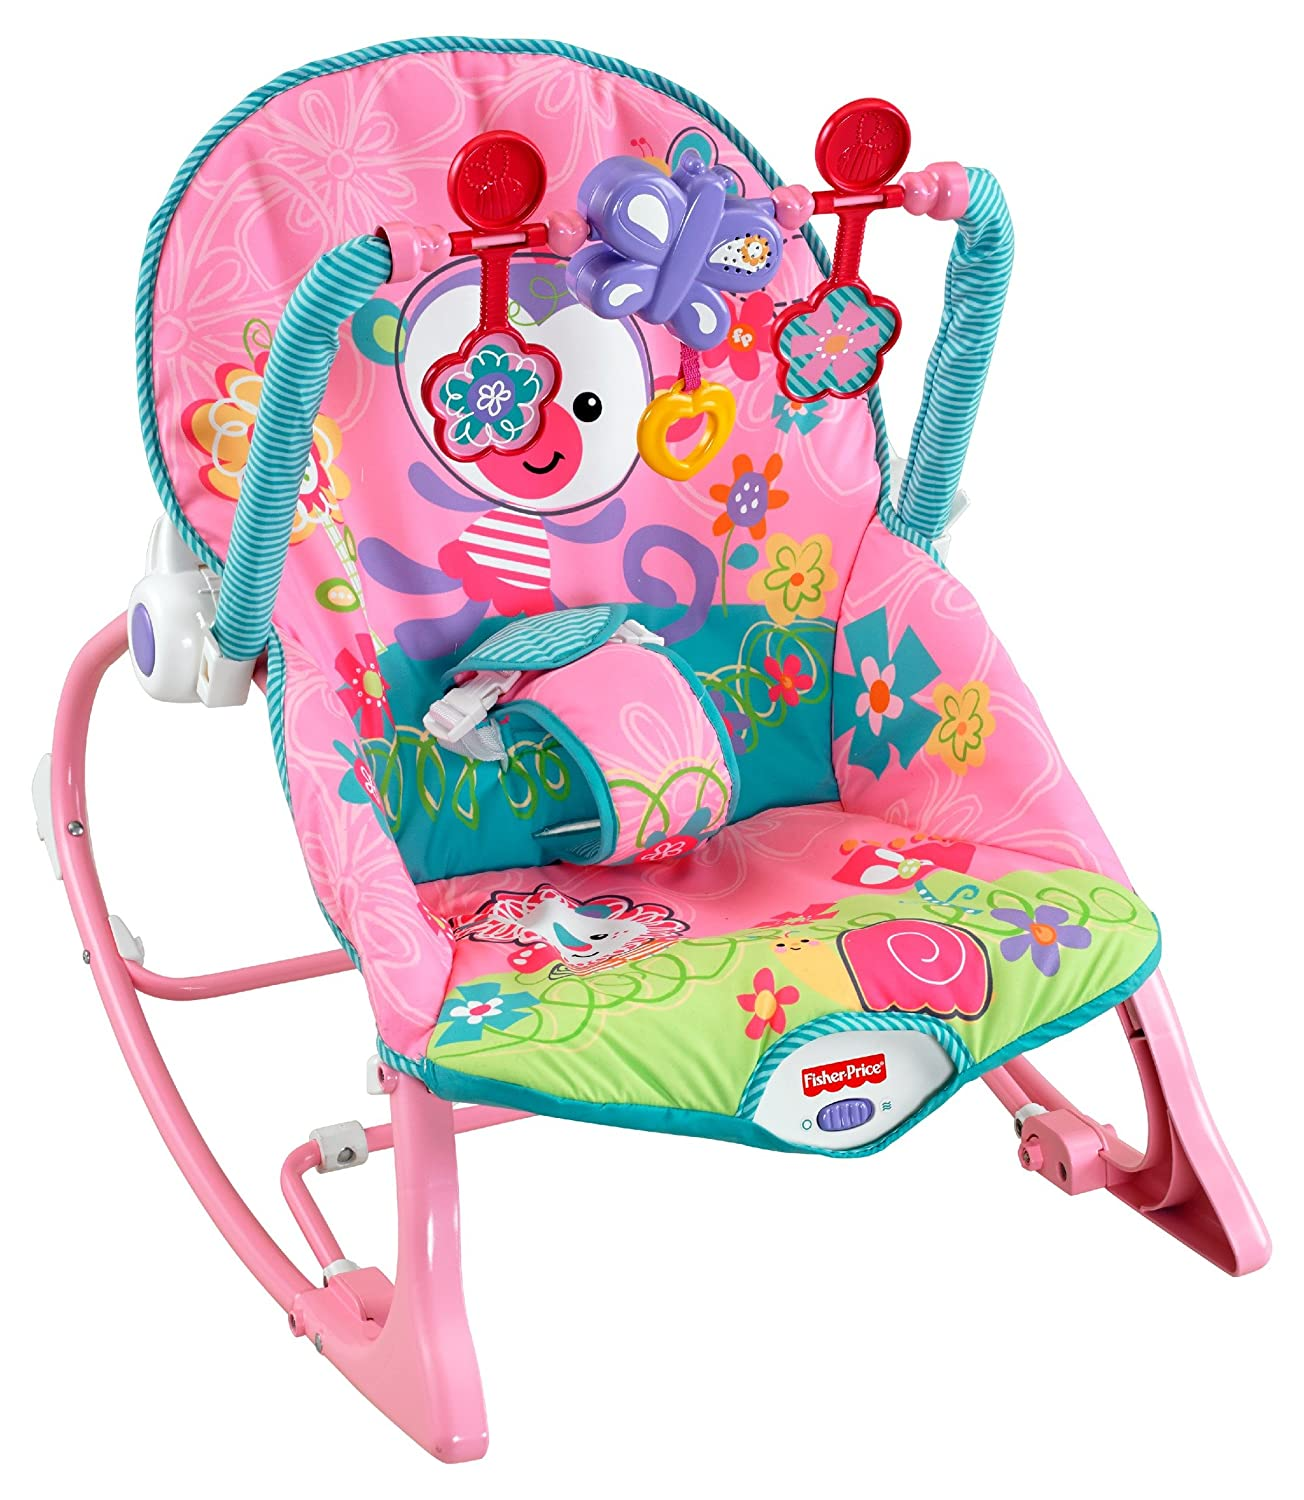 Fisher-Price Infant-to-Toddler Rocker, Pink CDG10